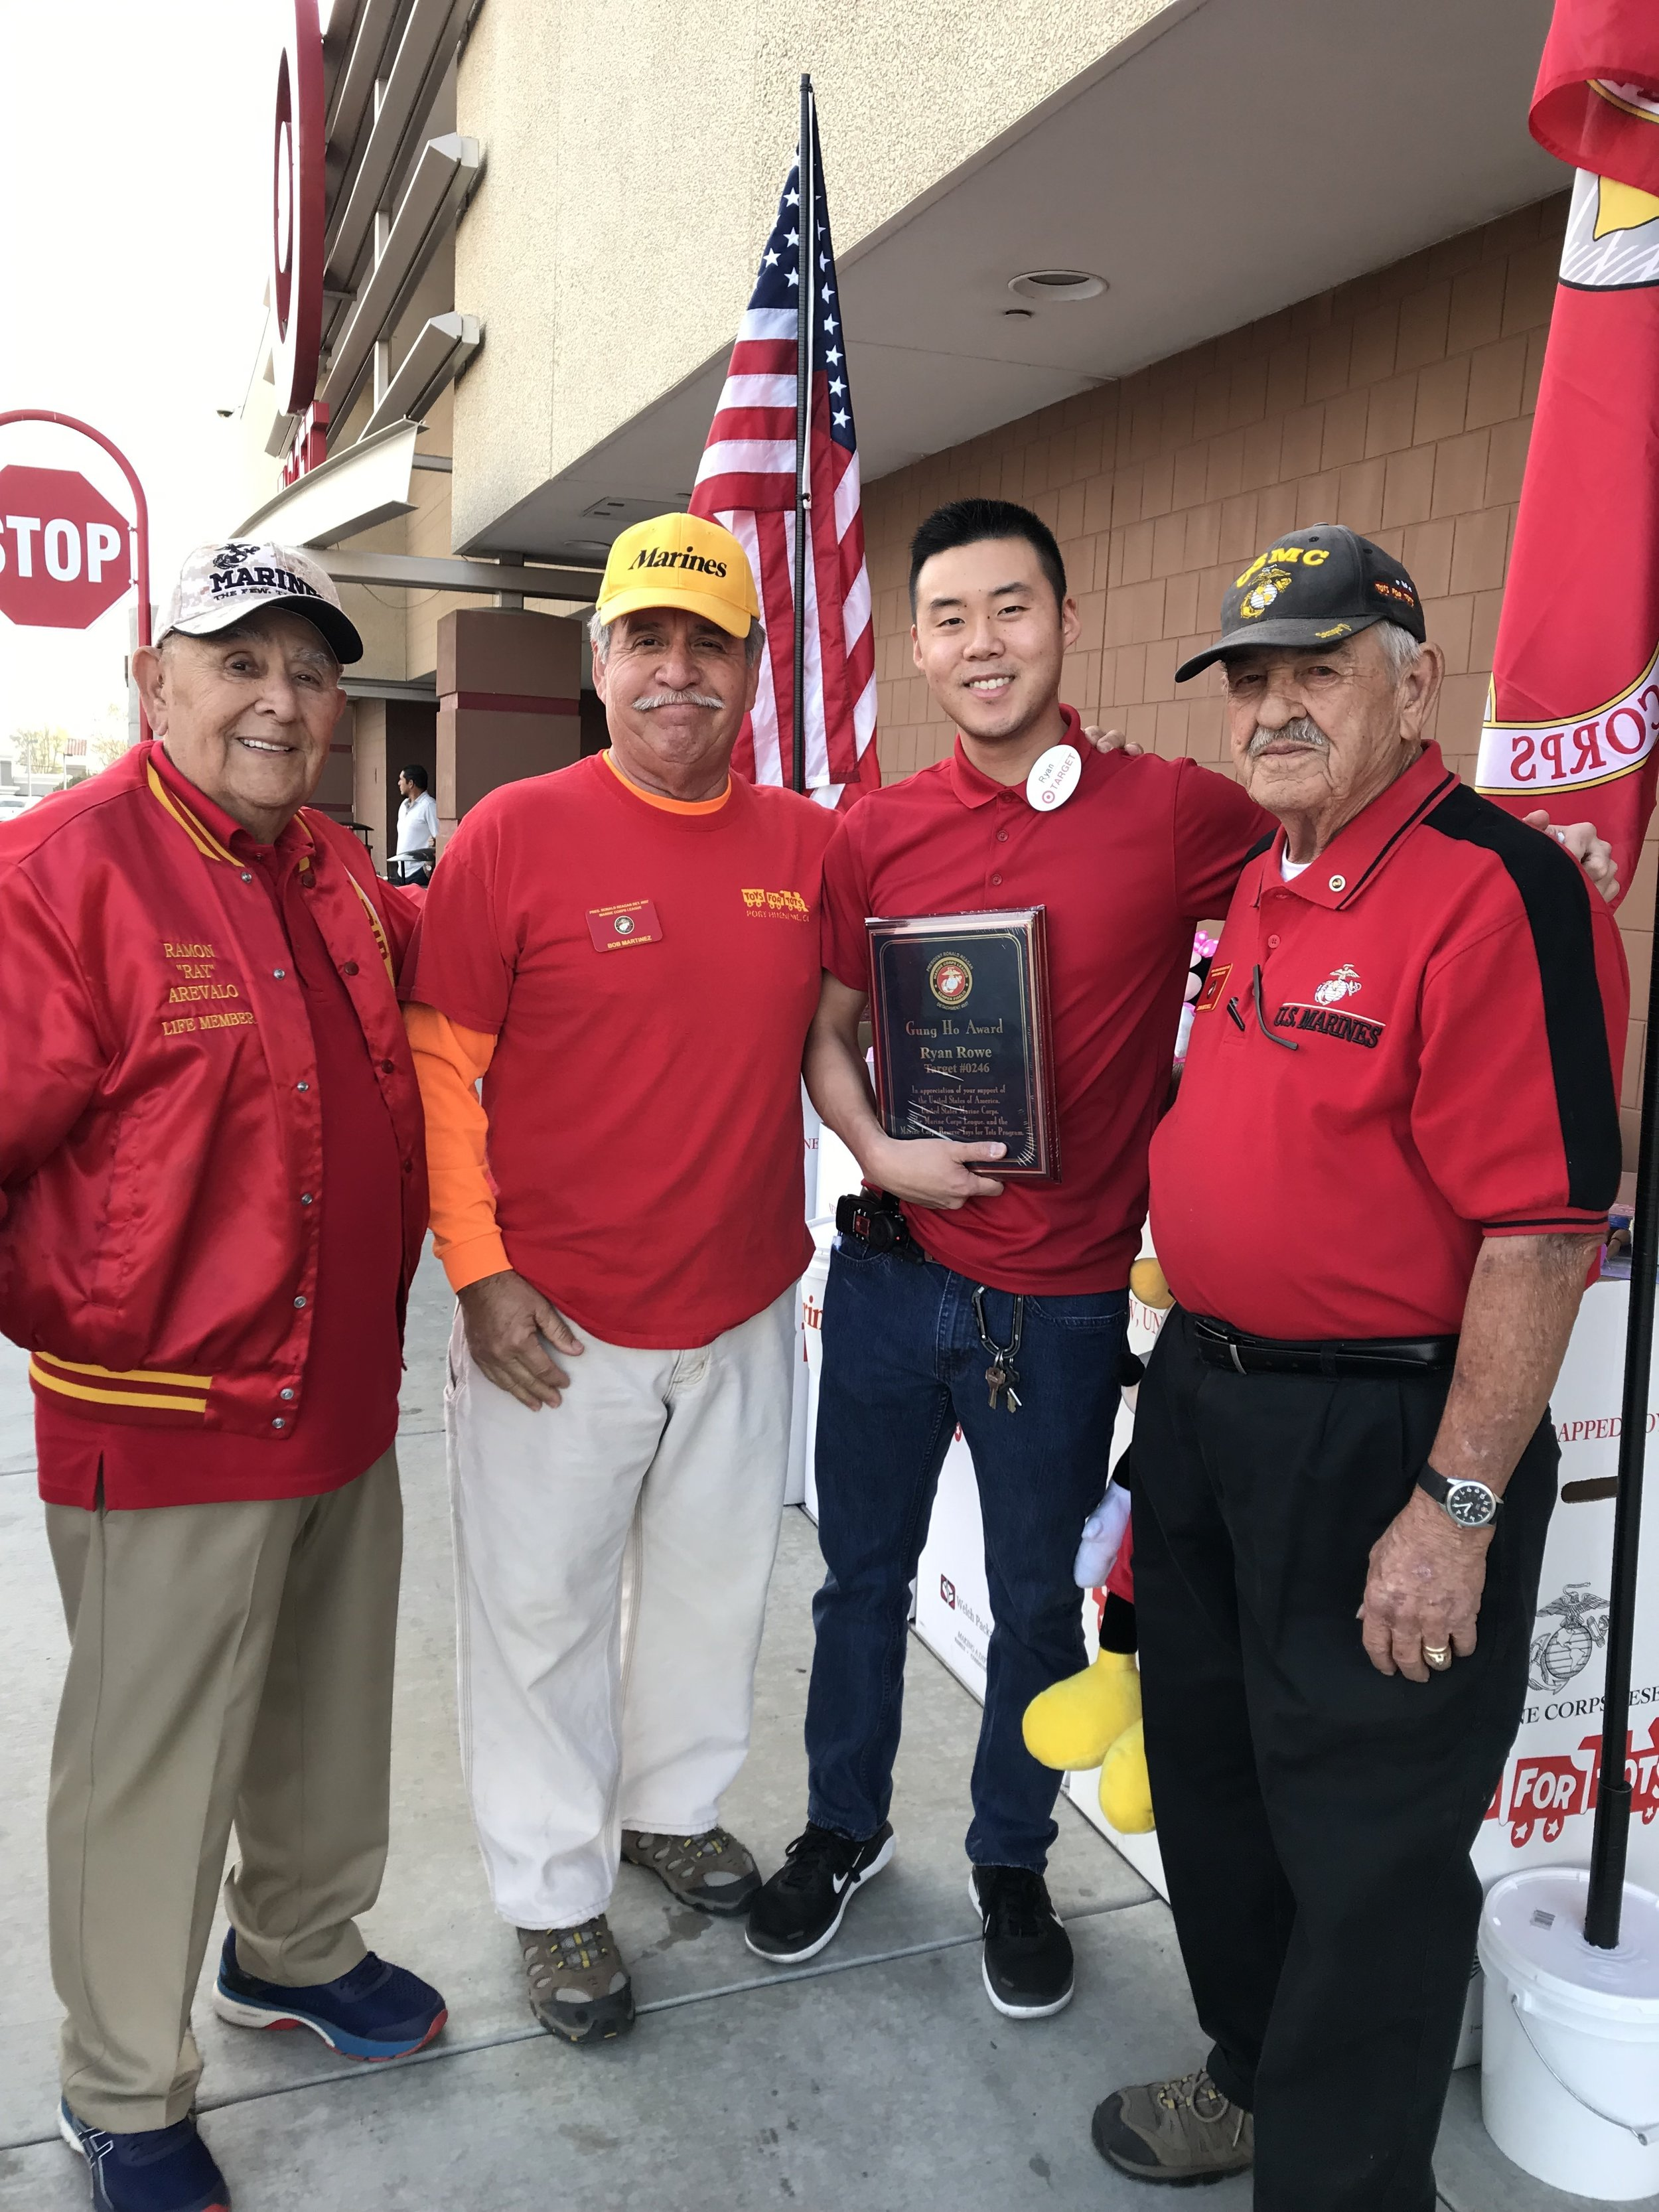 "December 24, 2018   Members of Detachment 597 presenting a ""Plaque of Appreciation"" to Target Store Manager Ryan Rowe for everything he has done for the Toys for Tots Campaign this year.   R/L: John Mitchell (Director of local Toys for Tots), Ryan Rowe (Mgr of Target Store, Sycamore Square), Bob Martinez (Ass't Director of Detachment Toys for Tots), and Ramon Arevalo (Detachment member)."